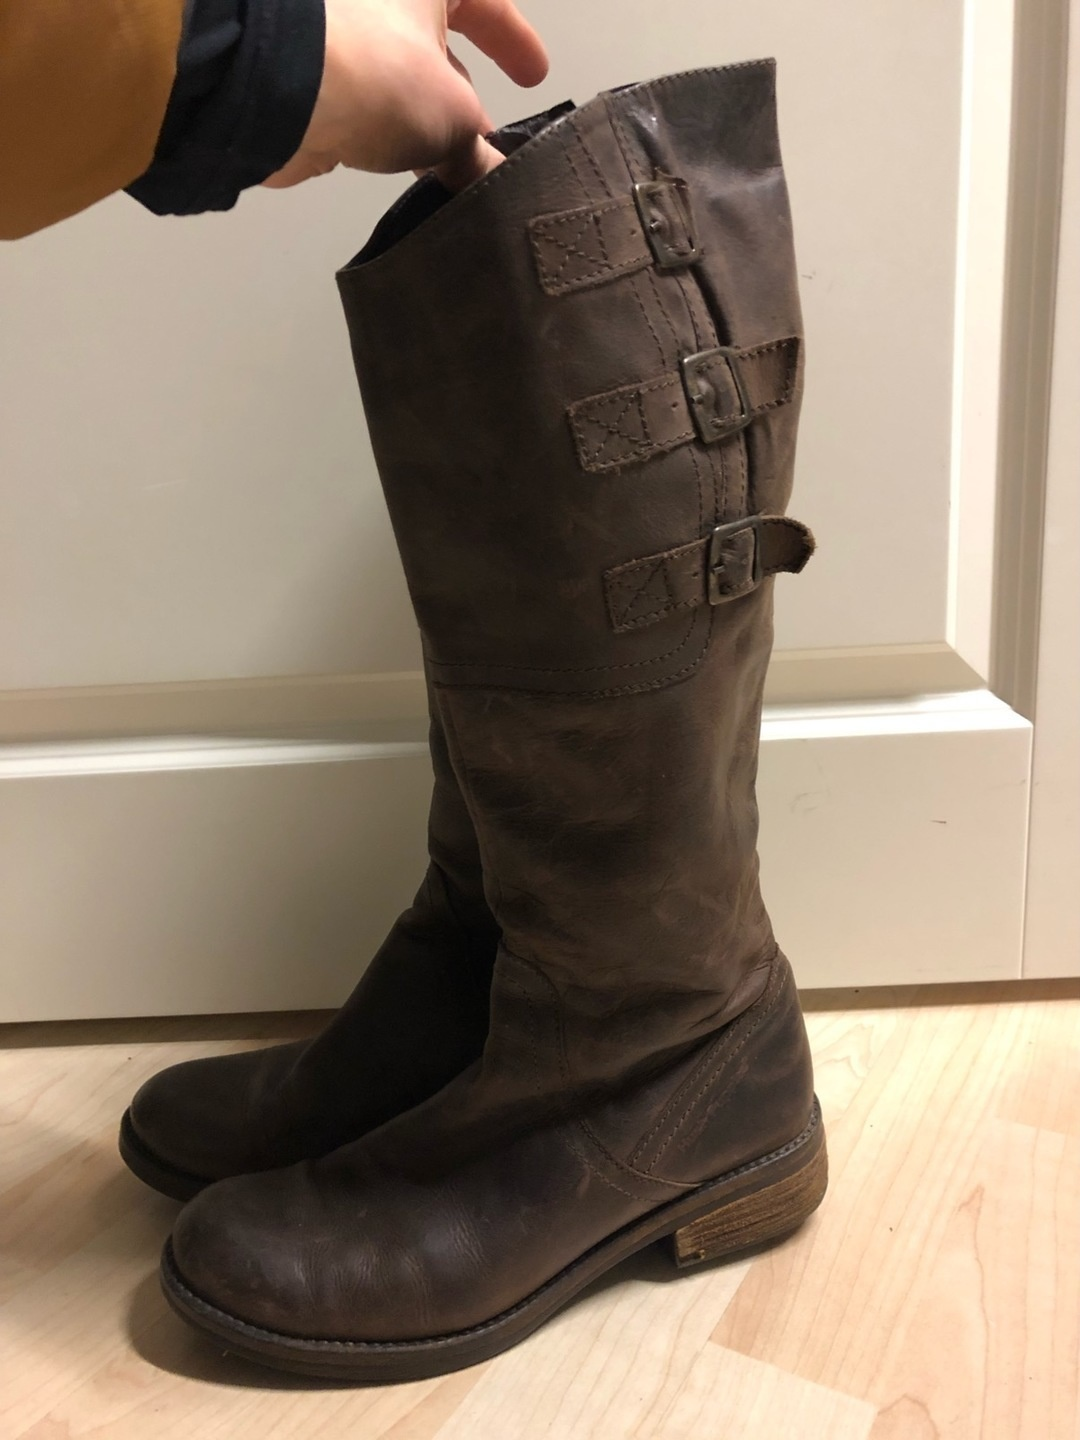 Women's boots - HUSH PUPPIES photo 1